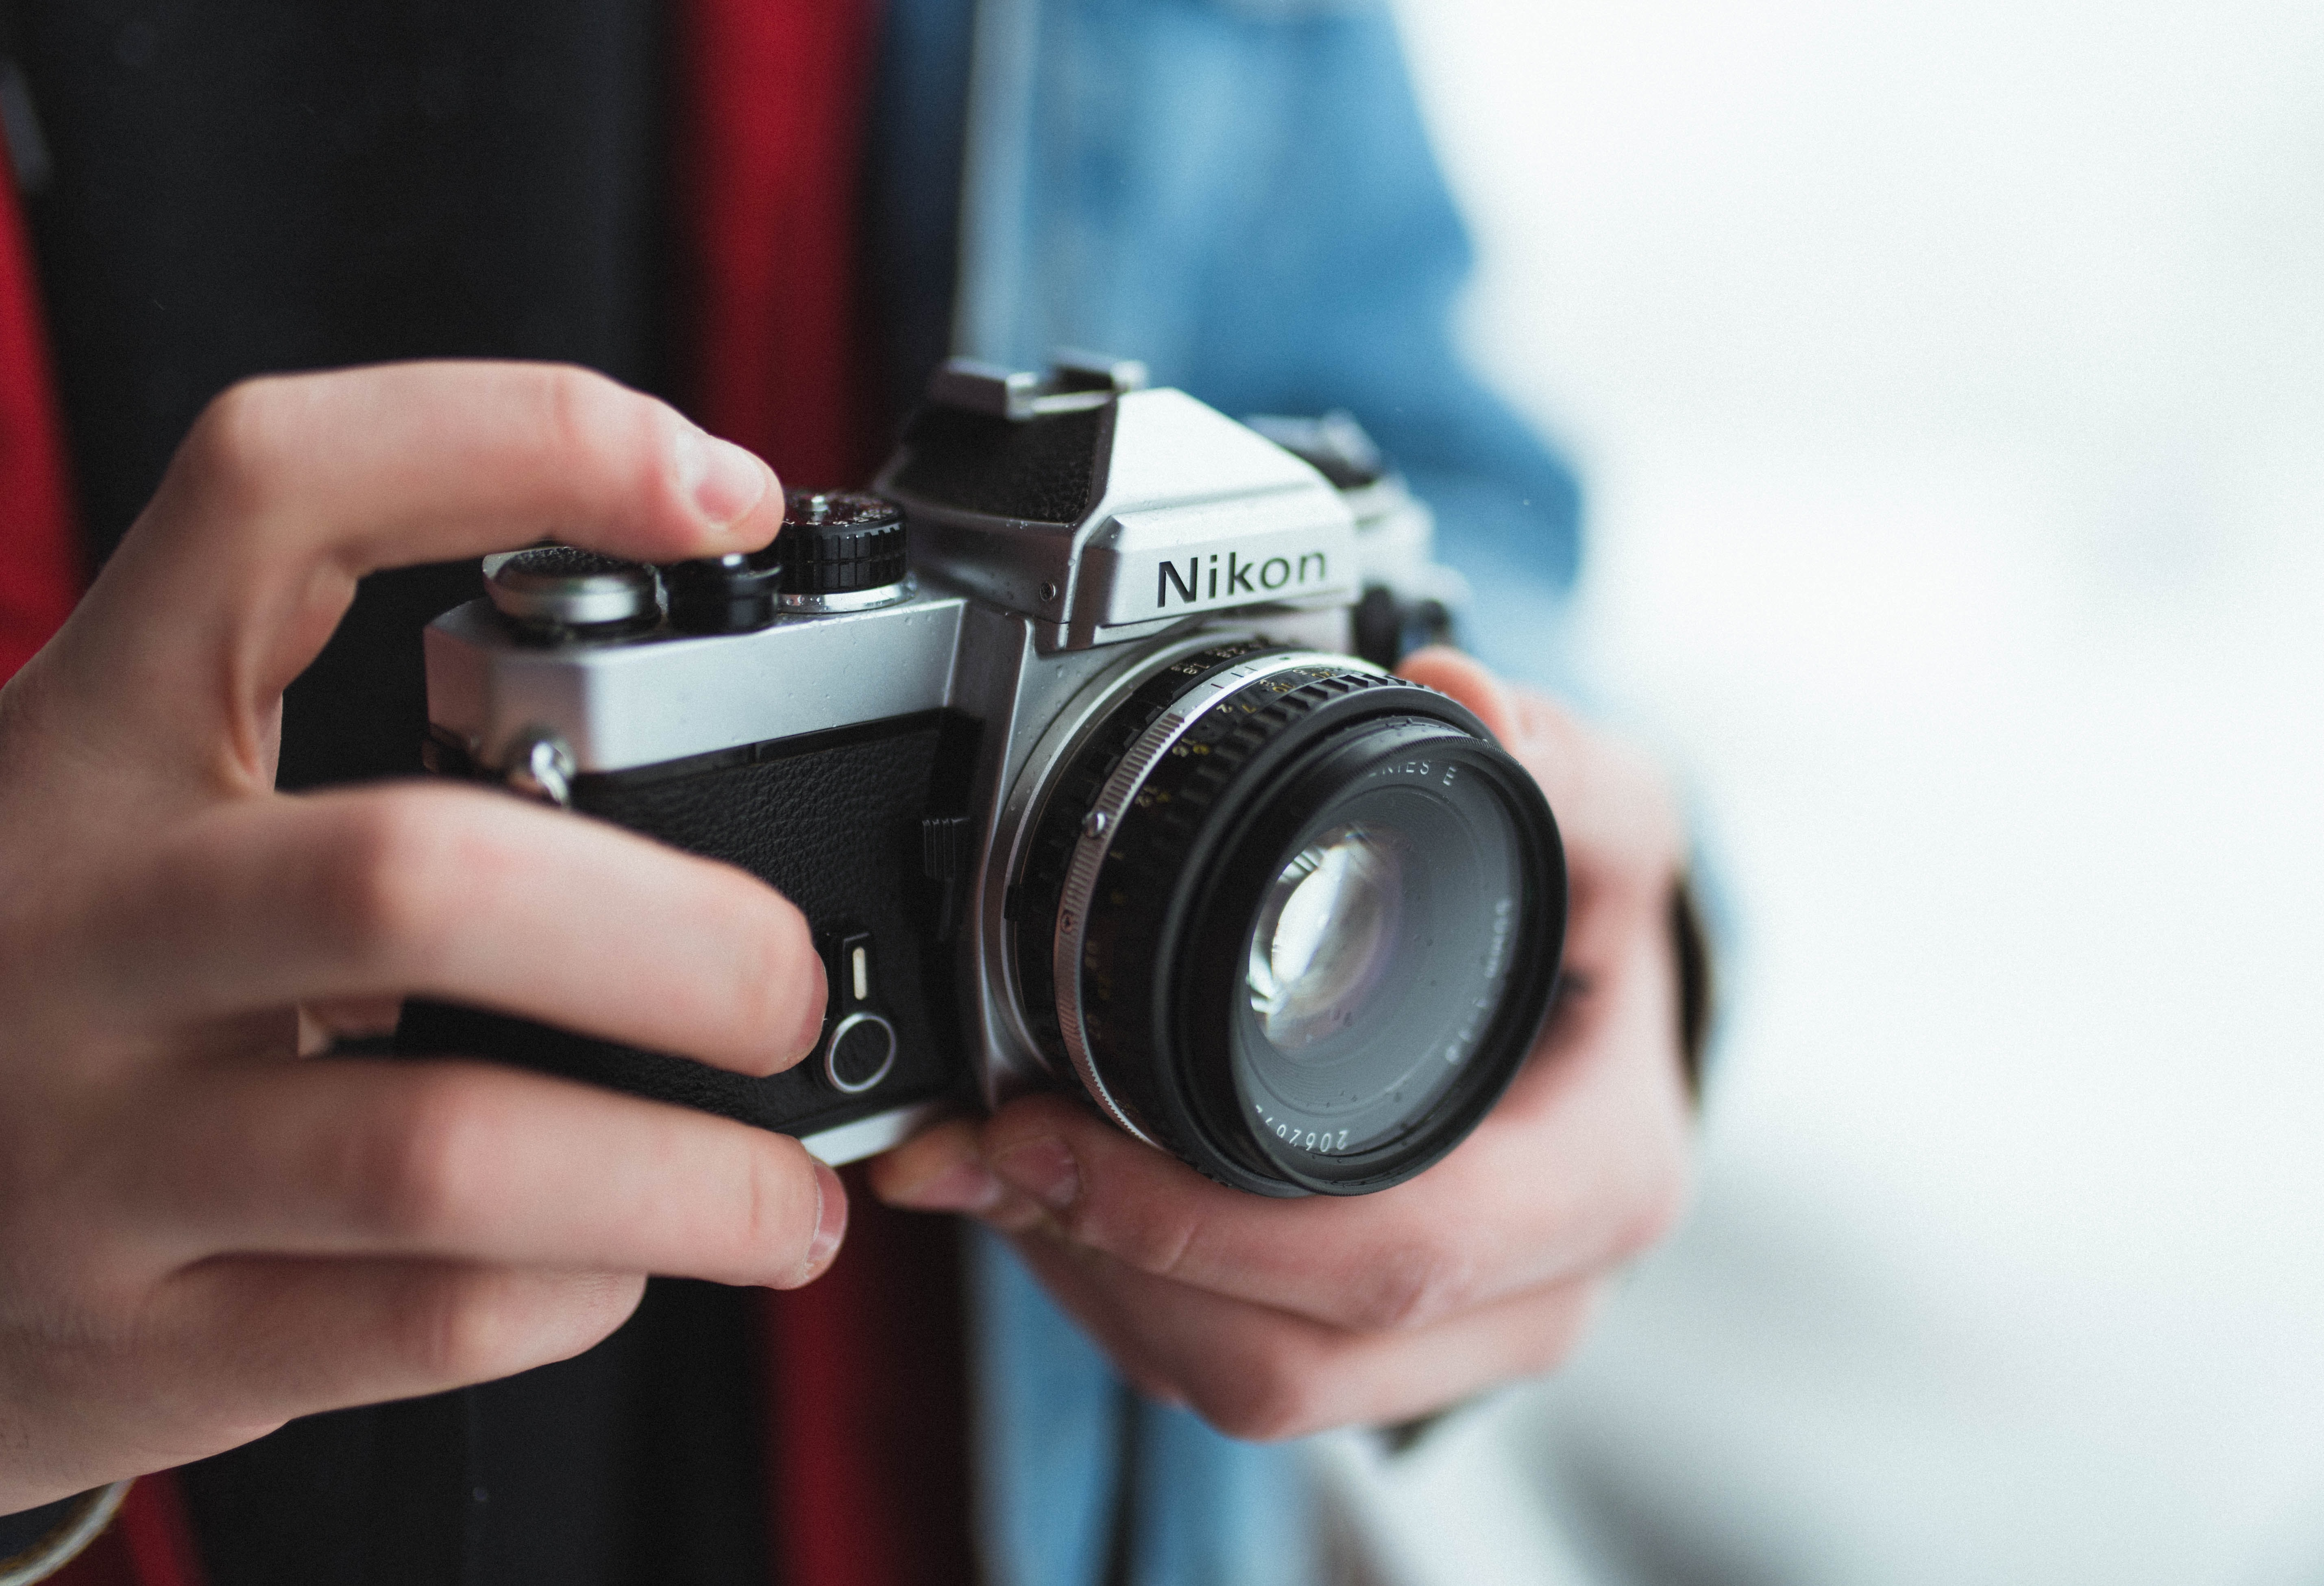 person holding black and gray Nikon DSLR camera